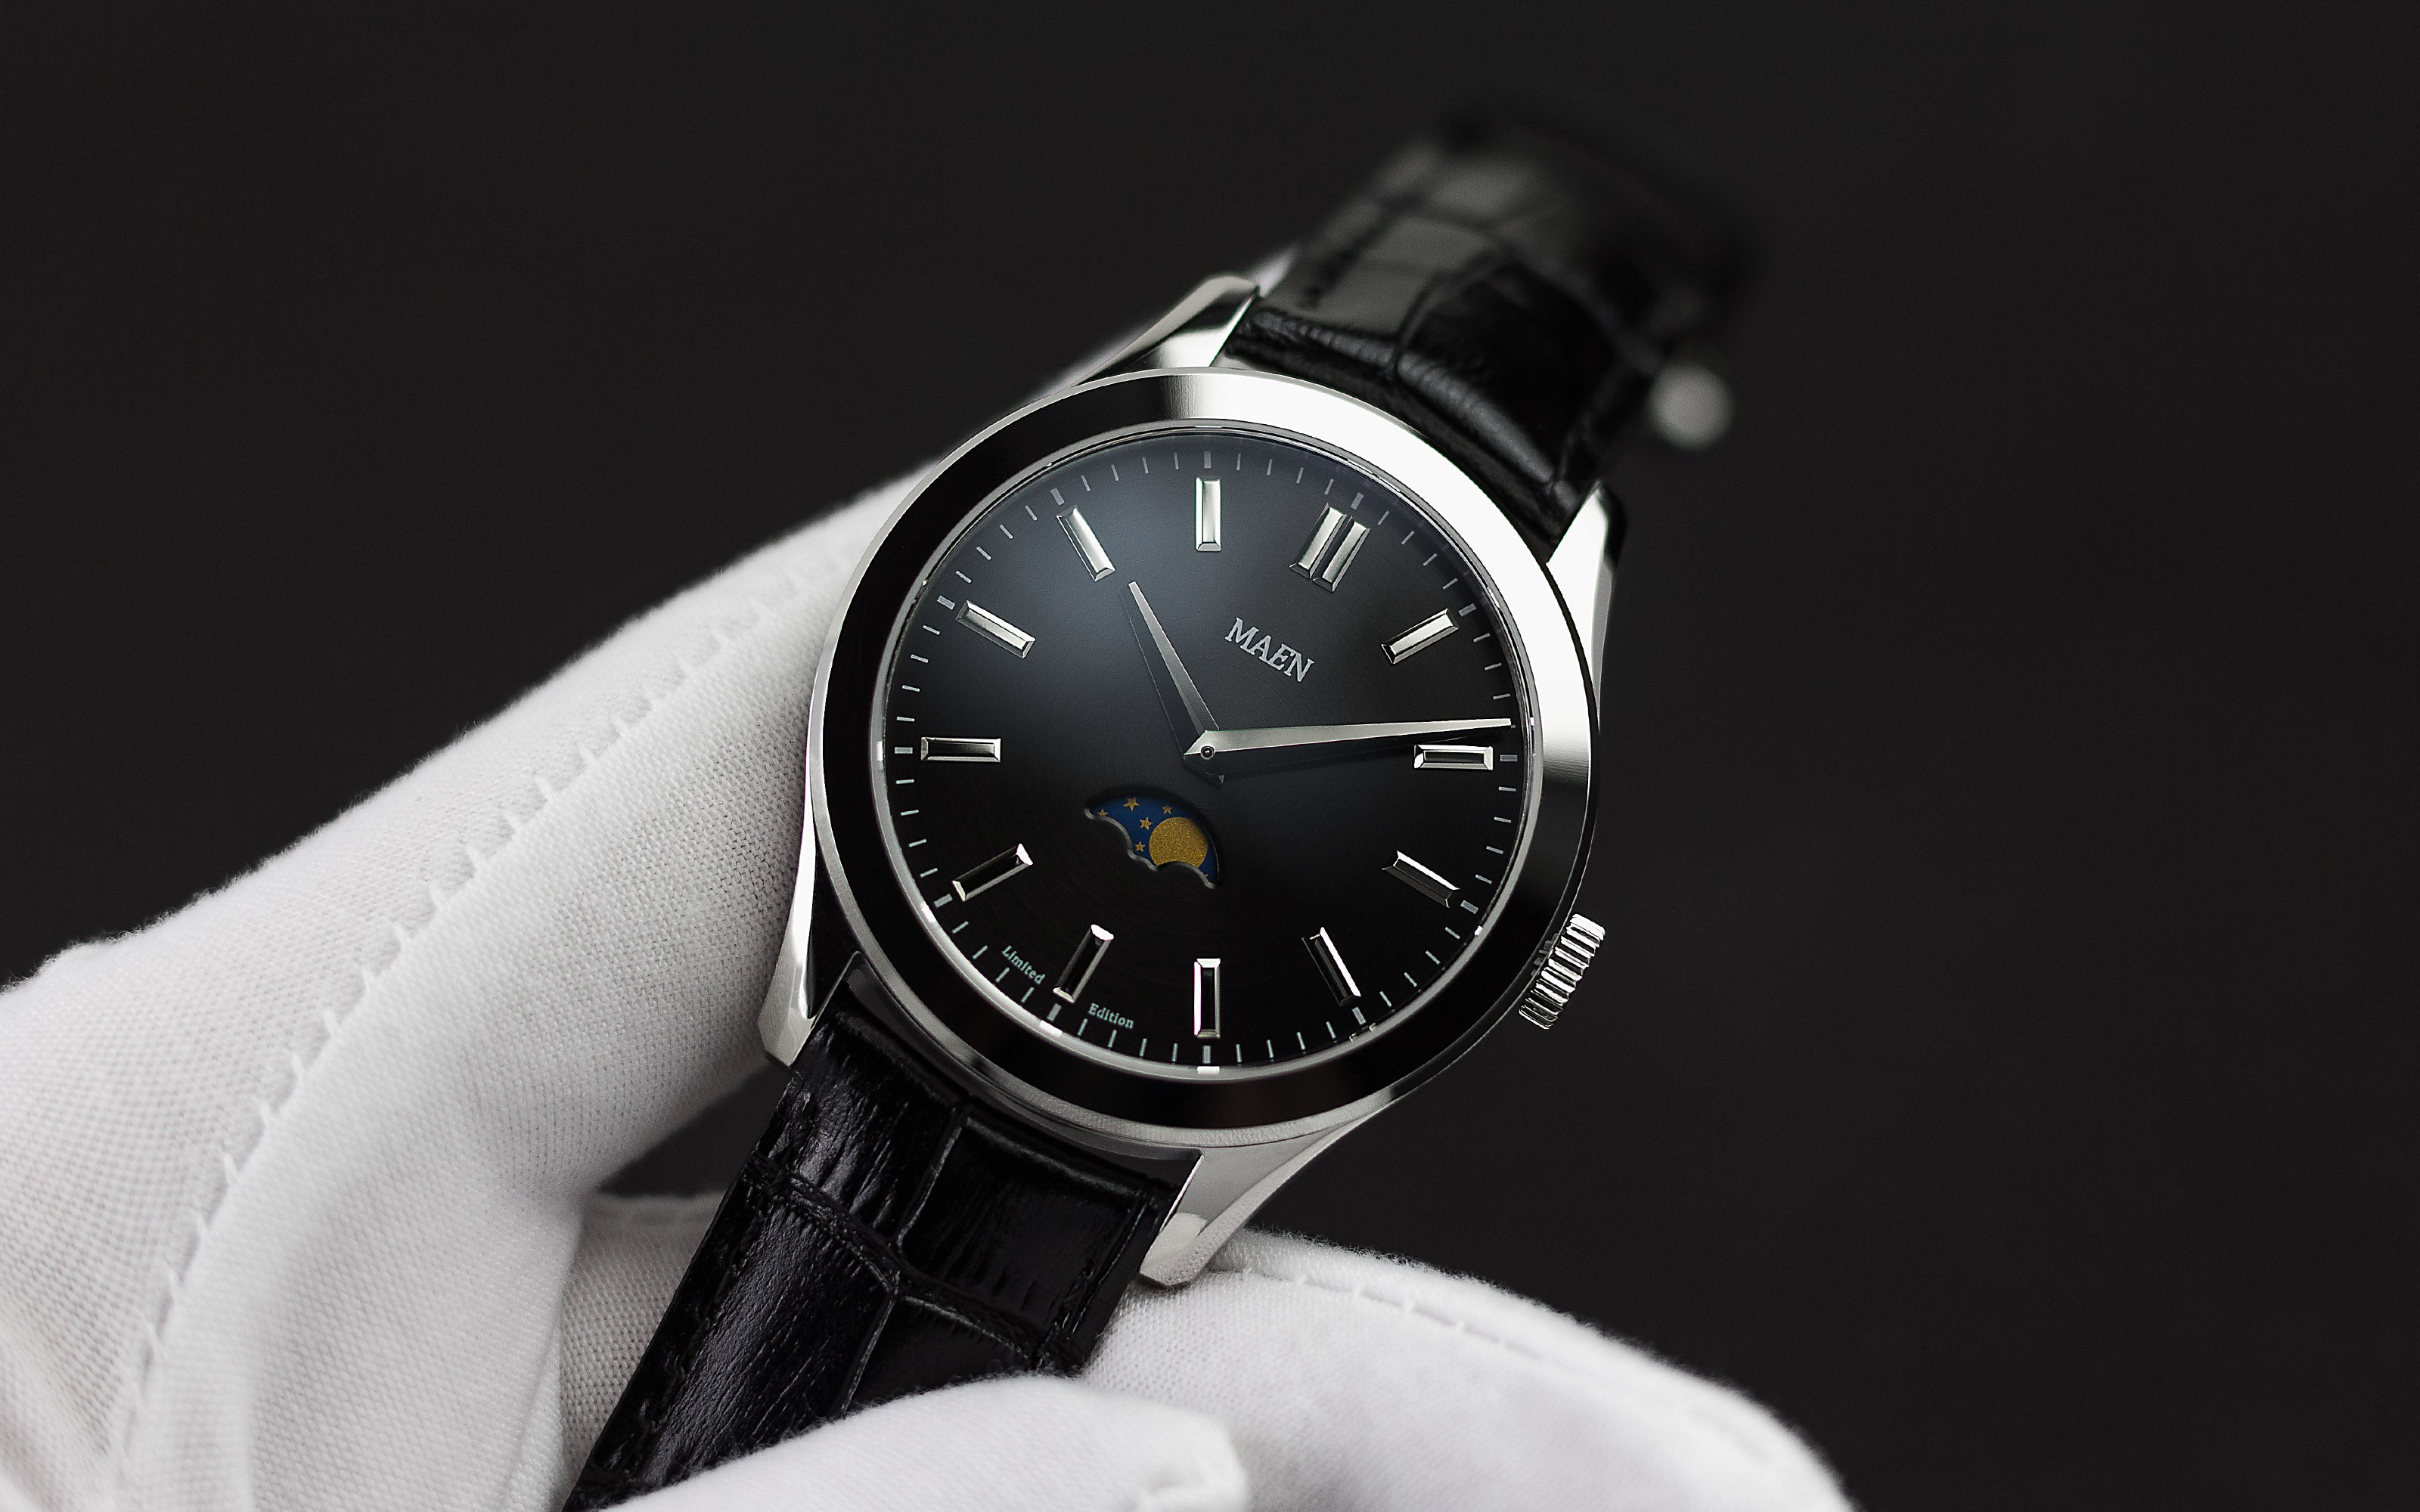 Maen Manhattan 40 Black_moonphase_watch_0f427de5-9139-48df-acd2-75c8b4b80b44